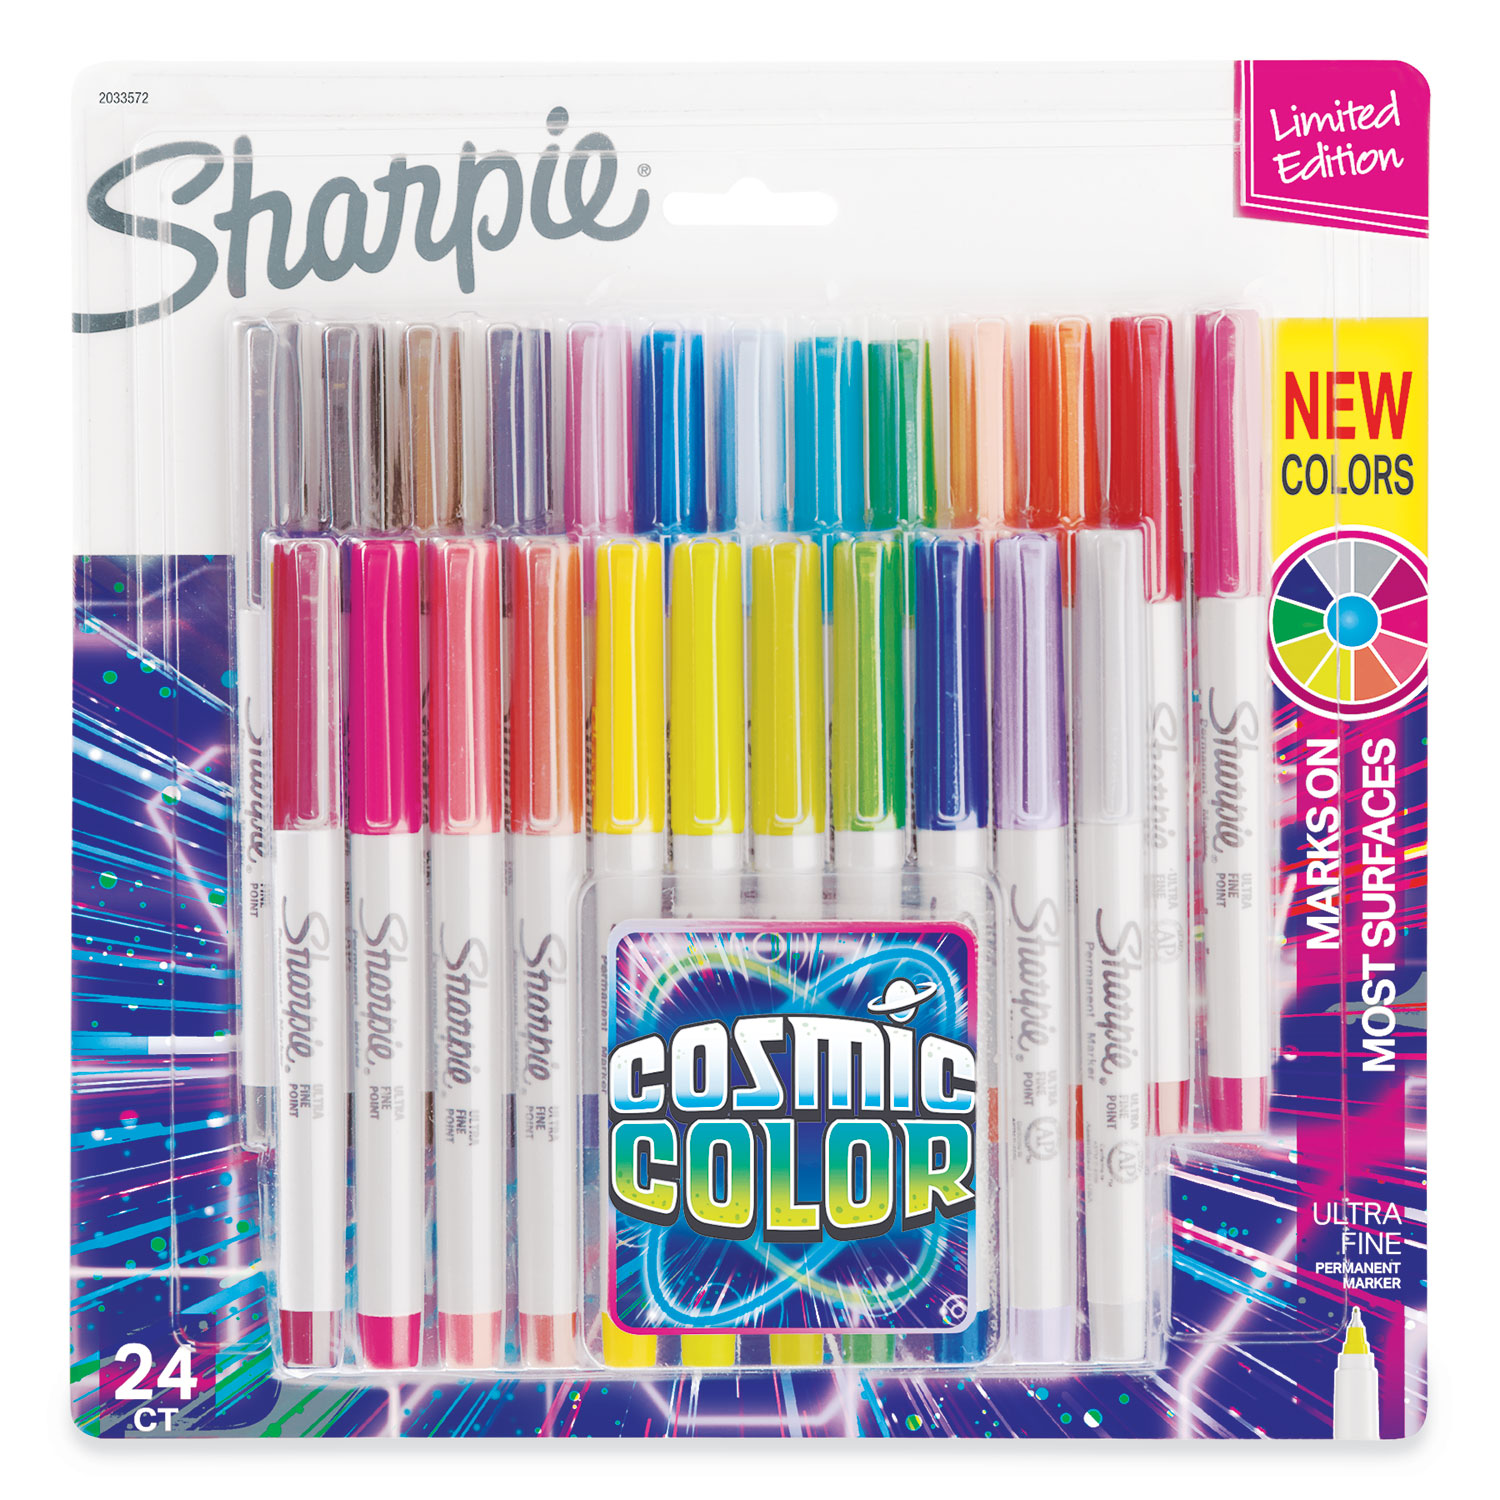 Ultra Fine Point Limited Edition Permanent Markers 1 Set of 24-Count Cosmic Color